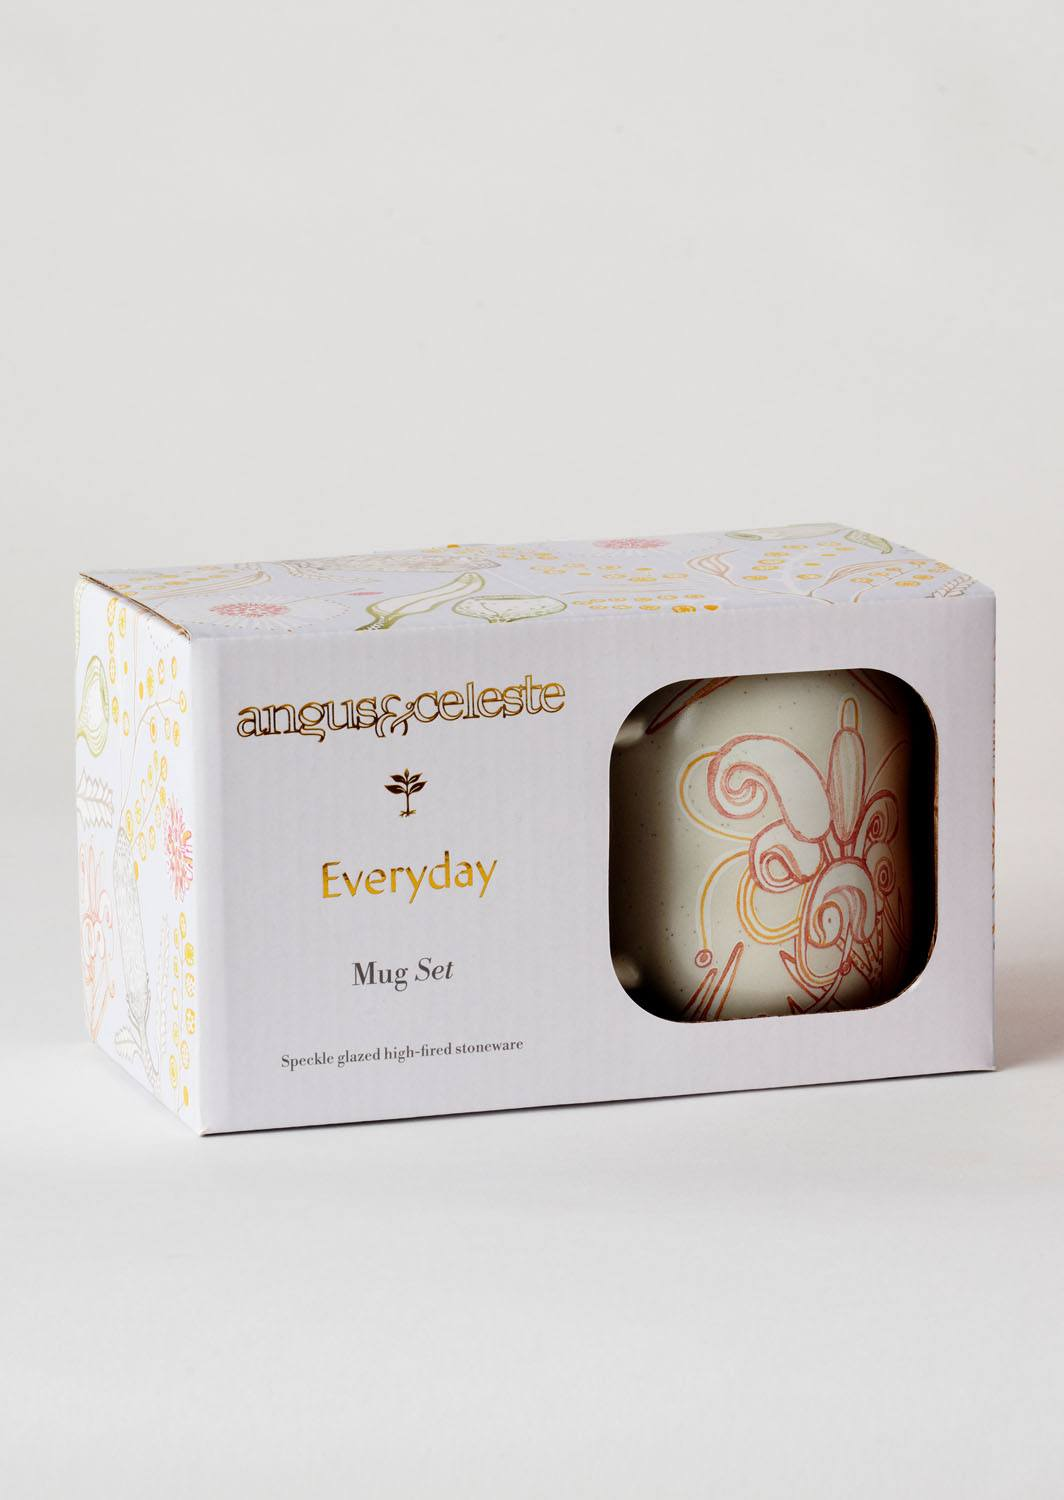 Angus & Celeste Everyday Mugs Grevillea Boxed